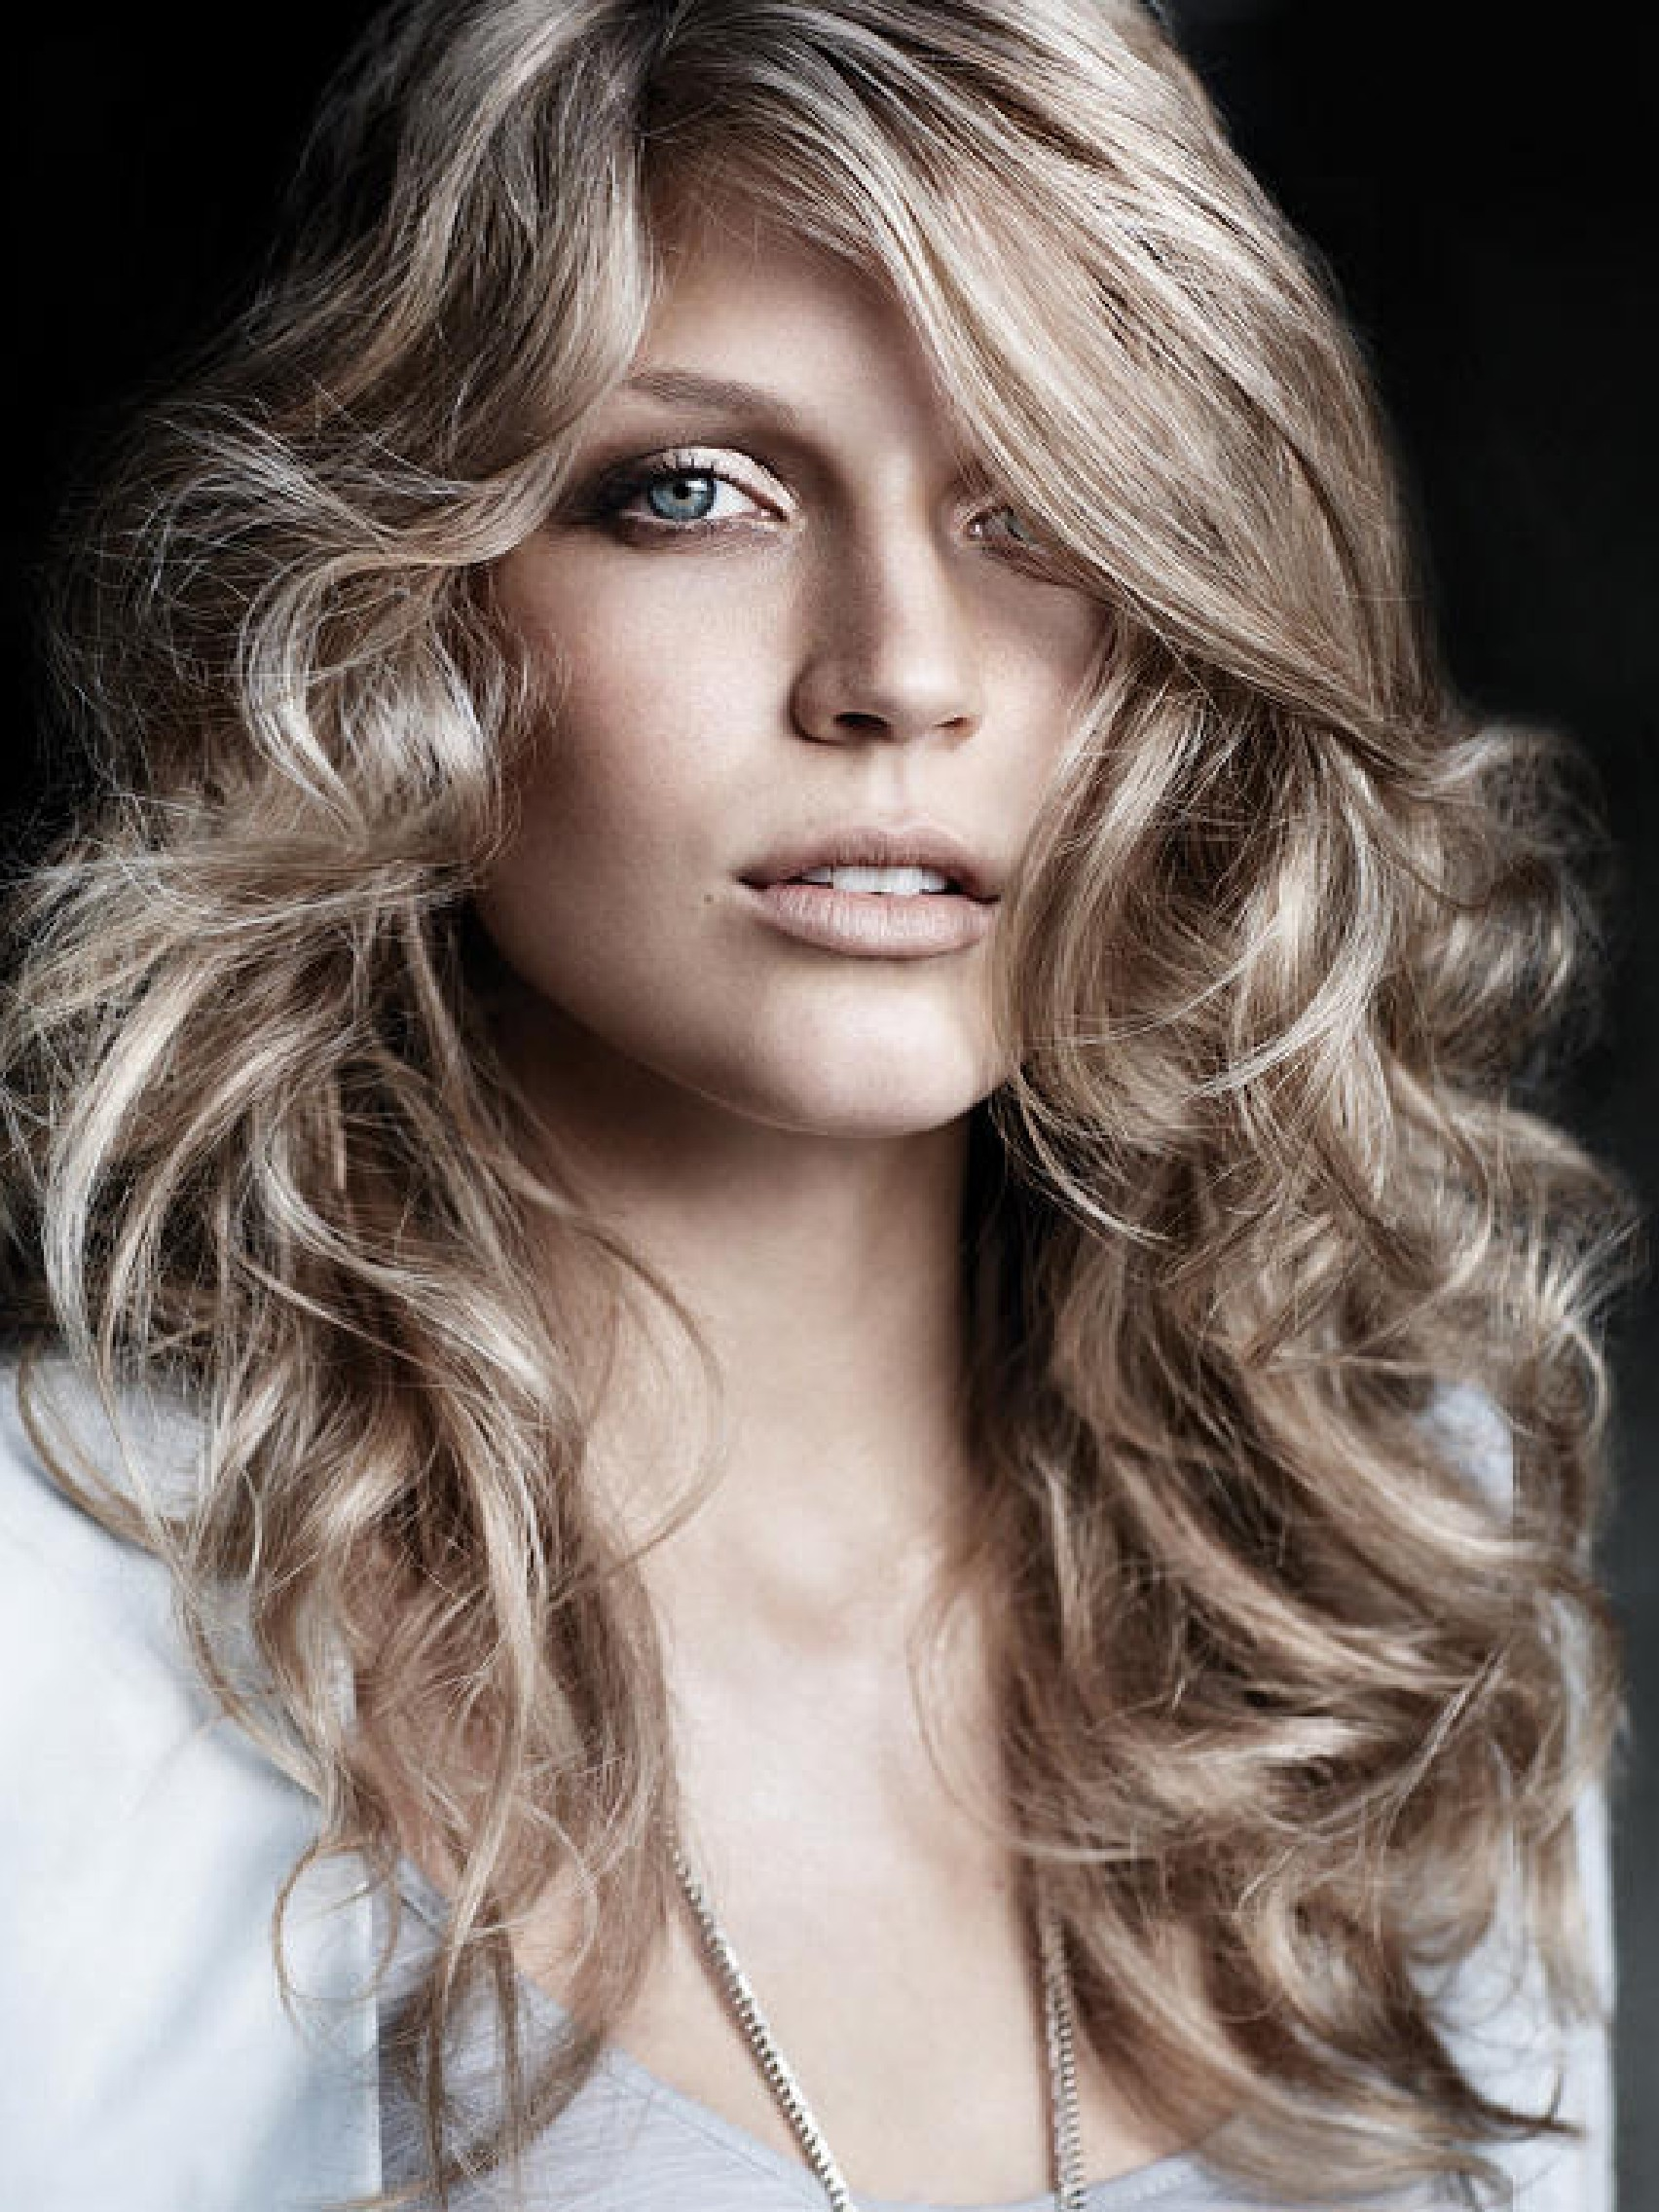 Hair Styles For Women Long Hair : styles, women, Hairstyle